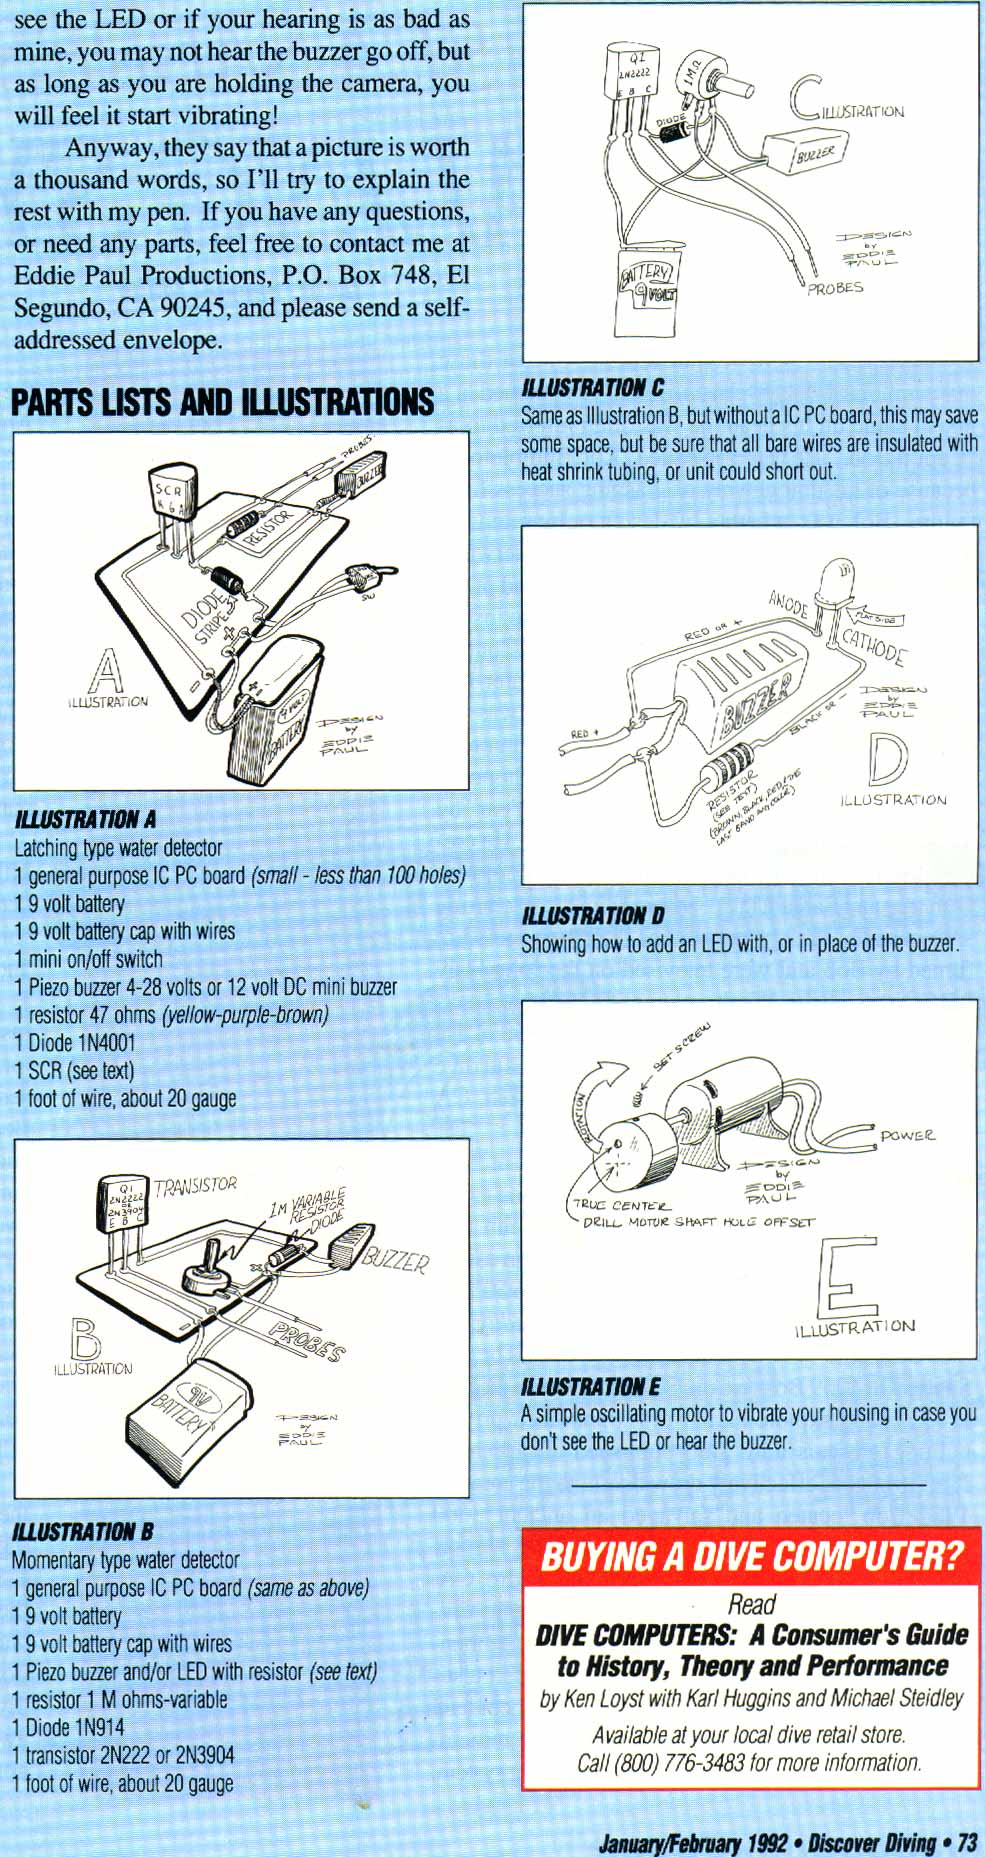 Skips Underwater Image Gallery Equipment Wiring Instructions Fidelity Investments My